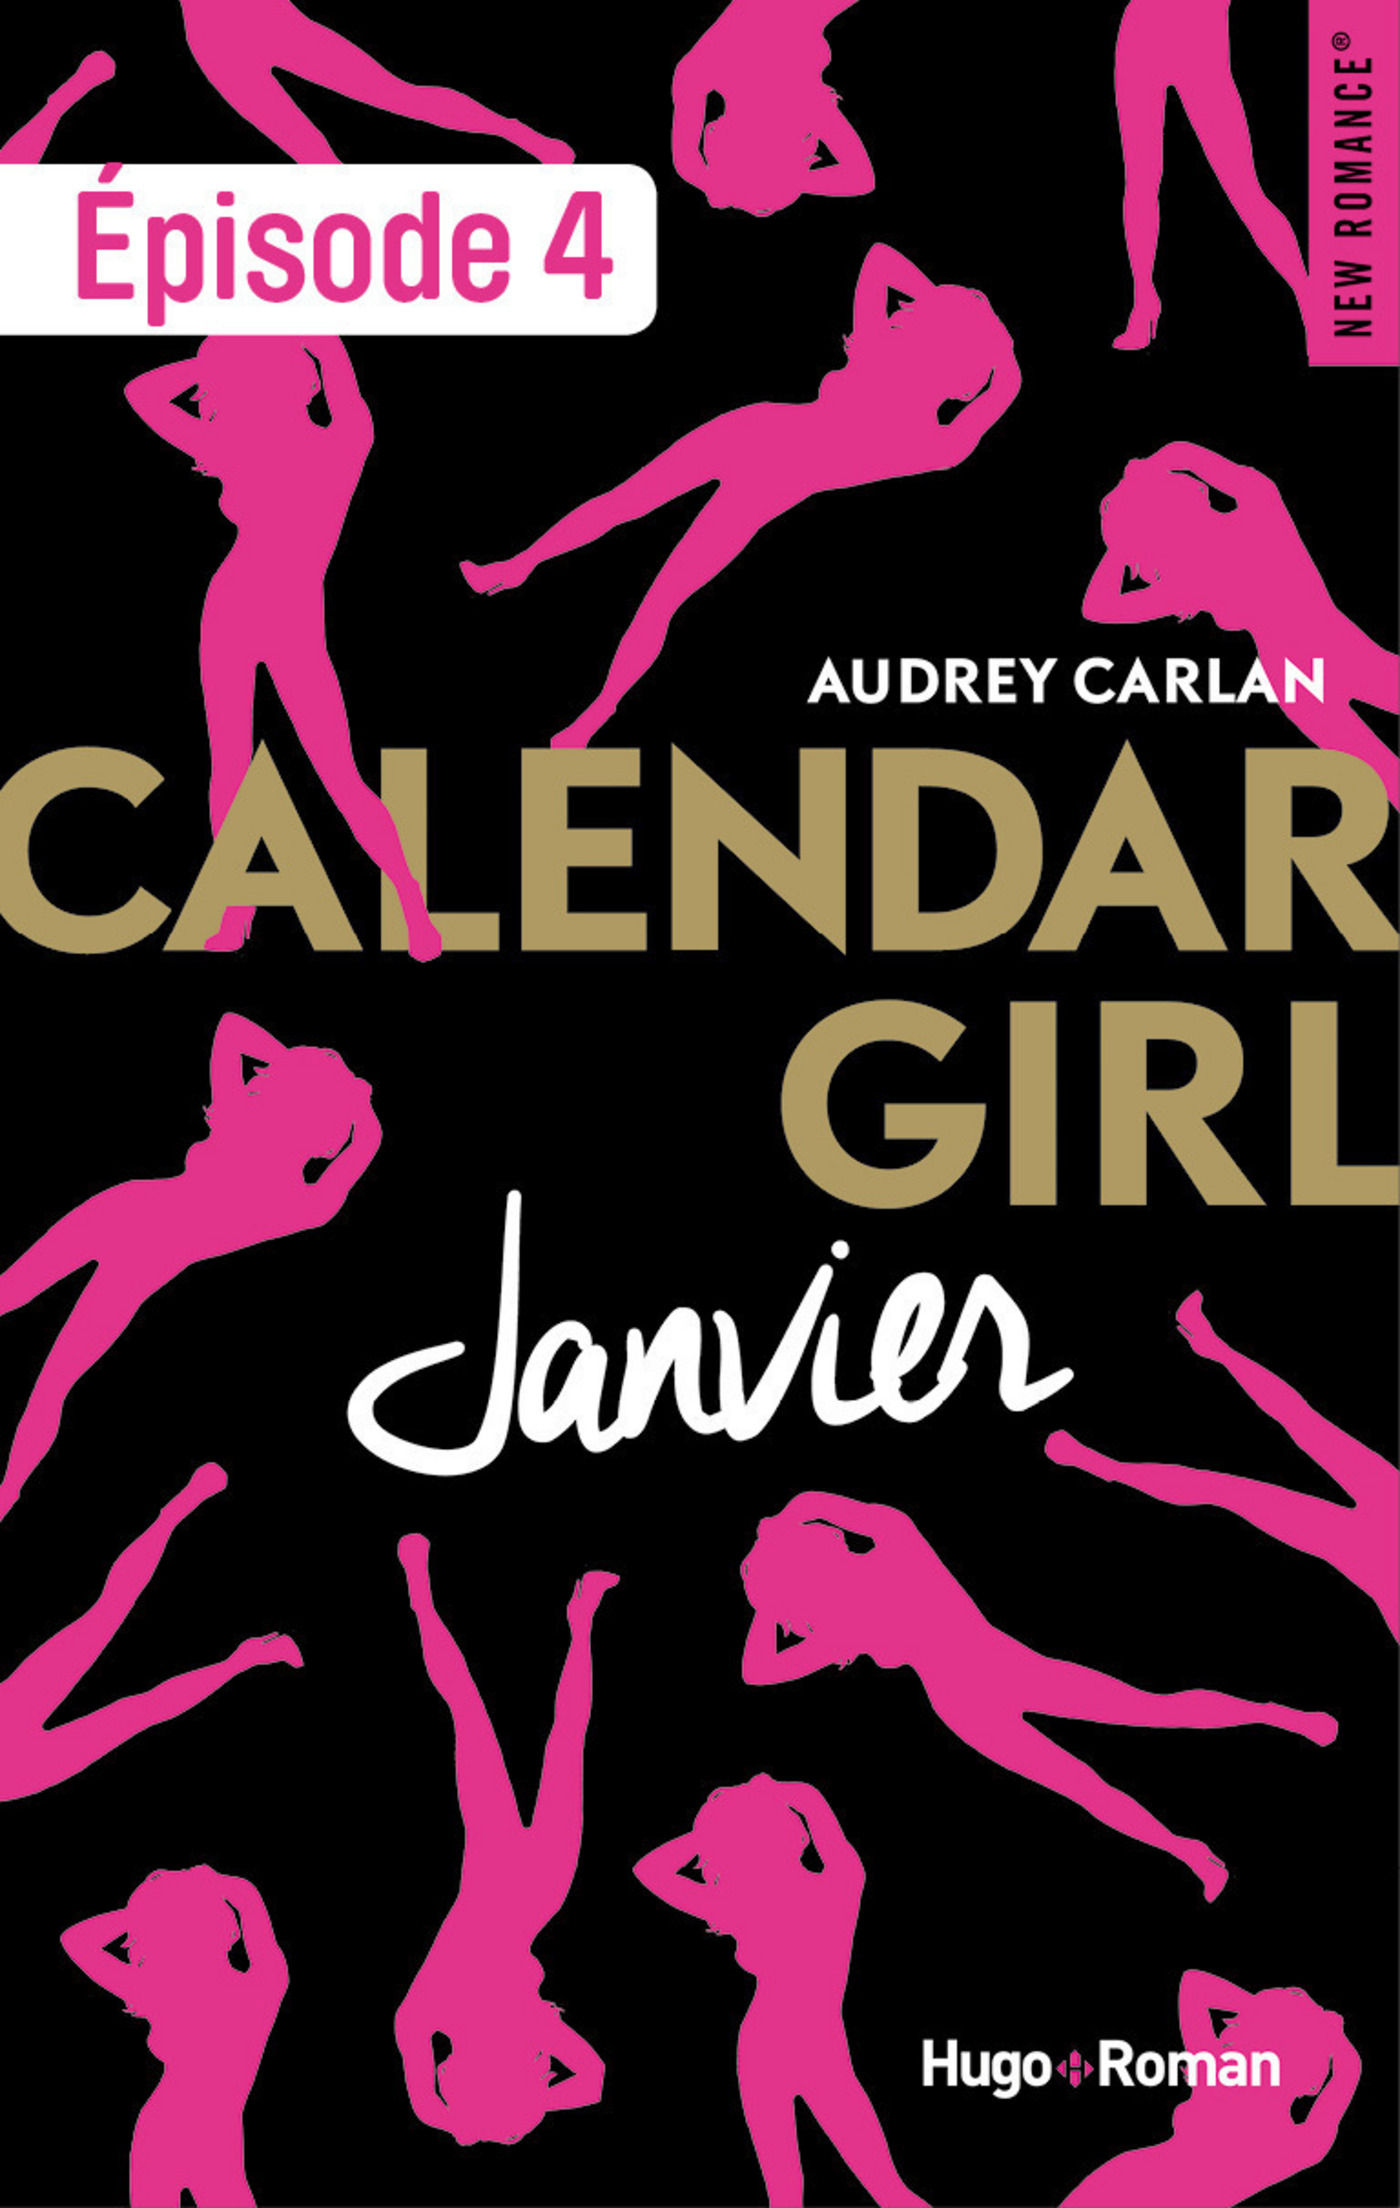 Calendar Girl - Janvier Episode 4